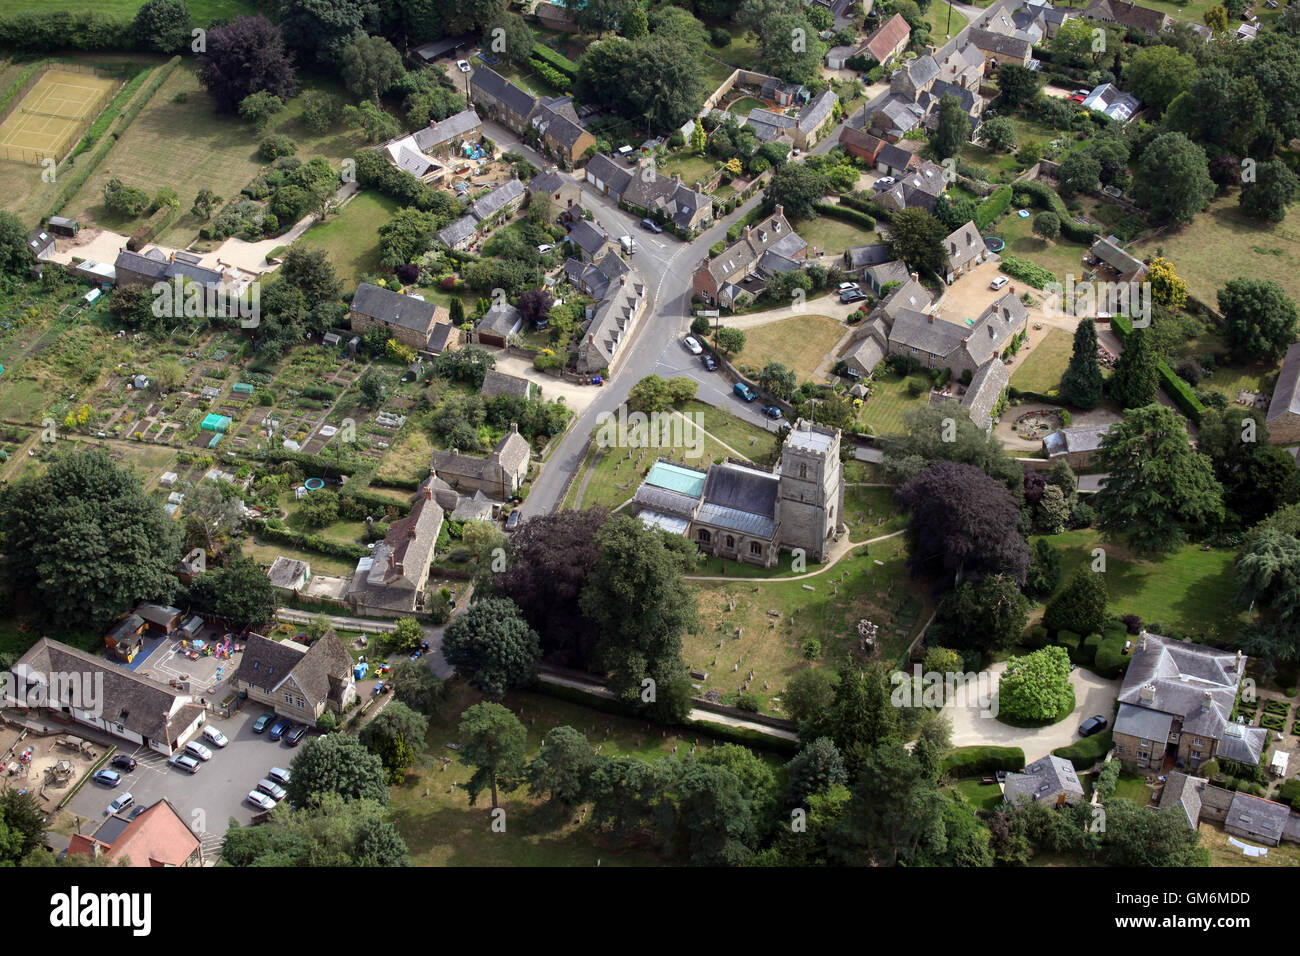 aerial view of the Oxfordshire village of Steeple Aston, UK - Stock Image